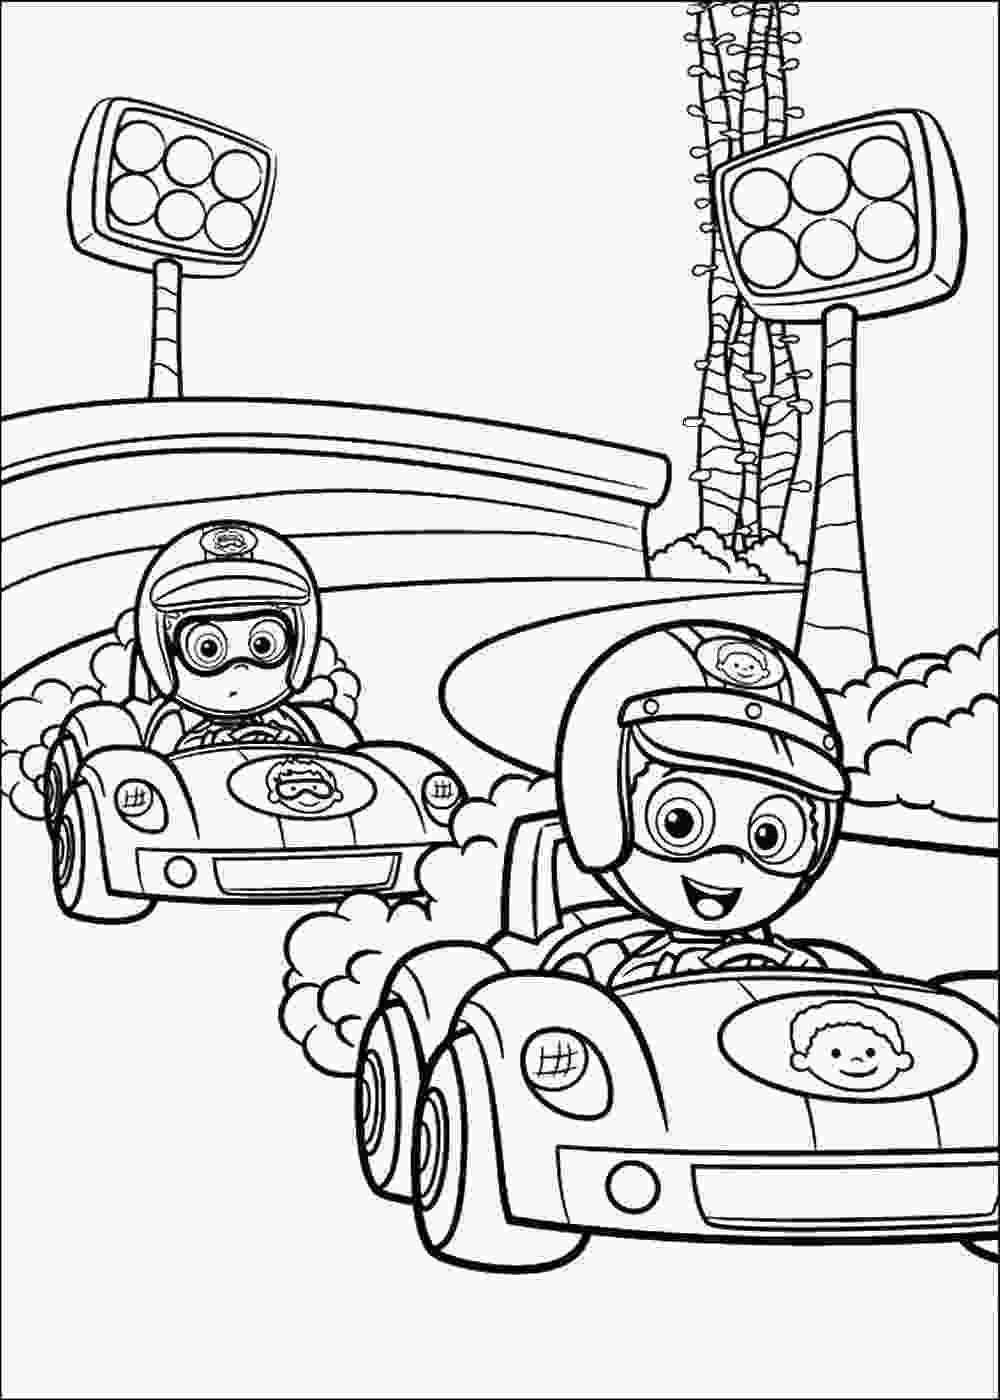 printable coloring page bubble guppies coloring pages birthday printable